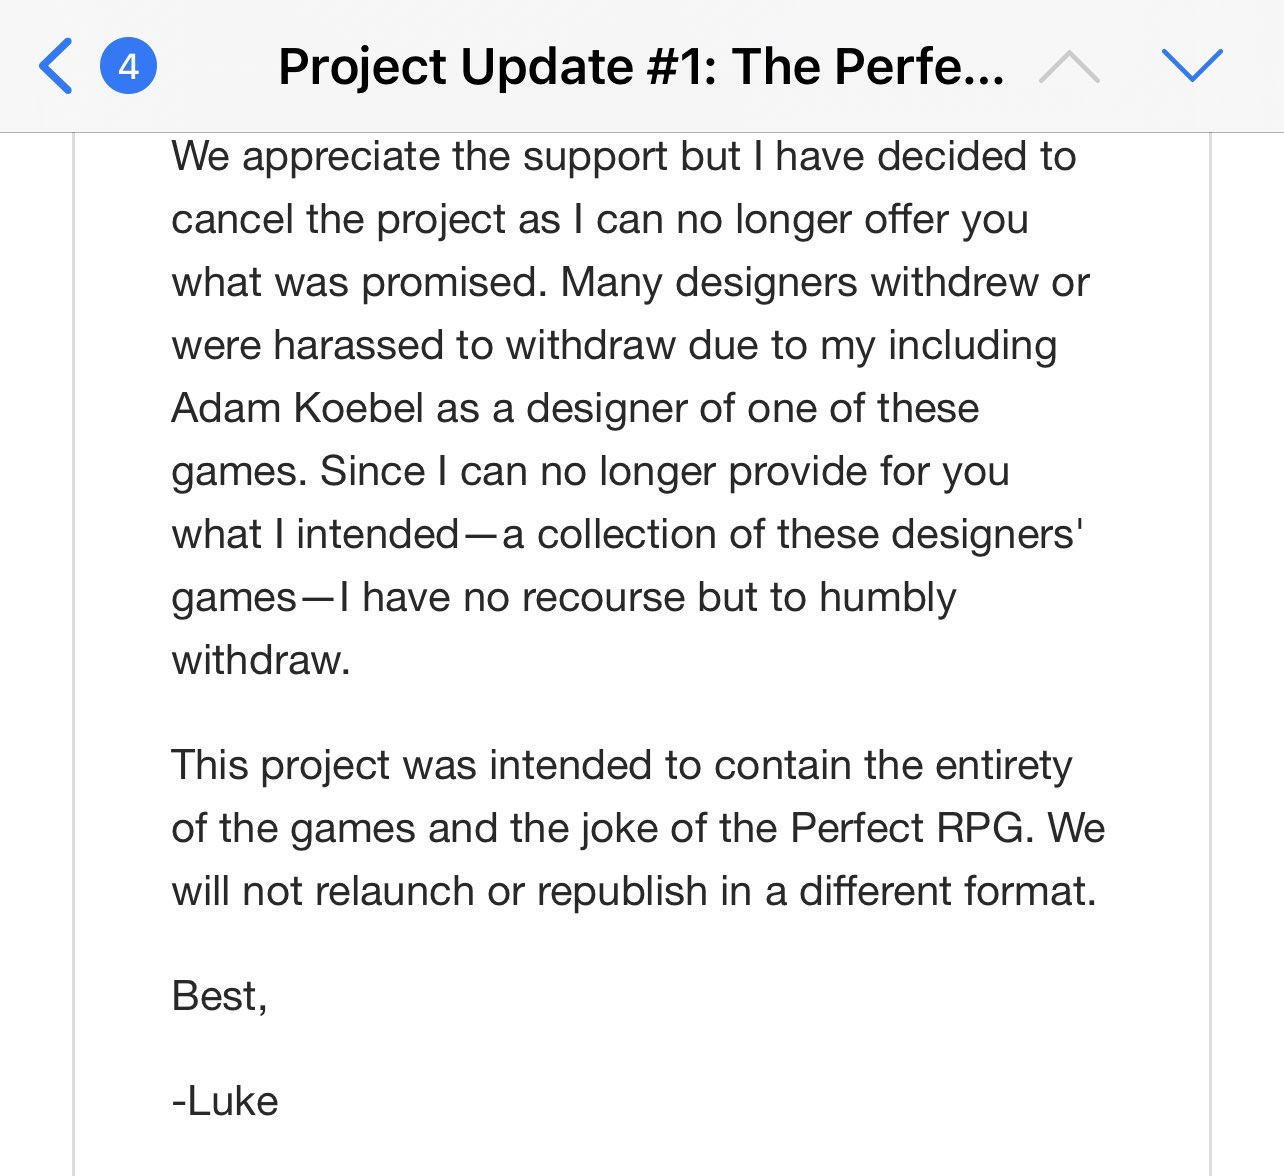 Kickstarter Update cancelling the project